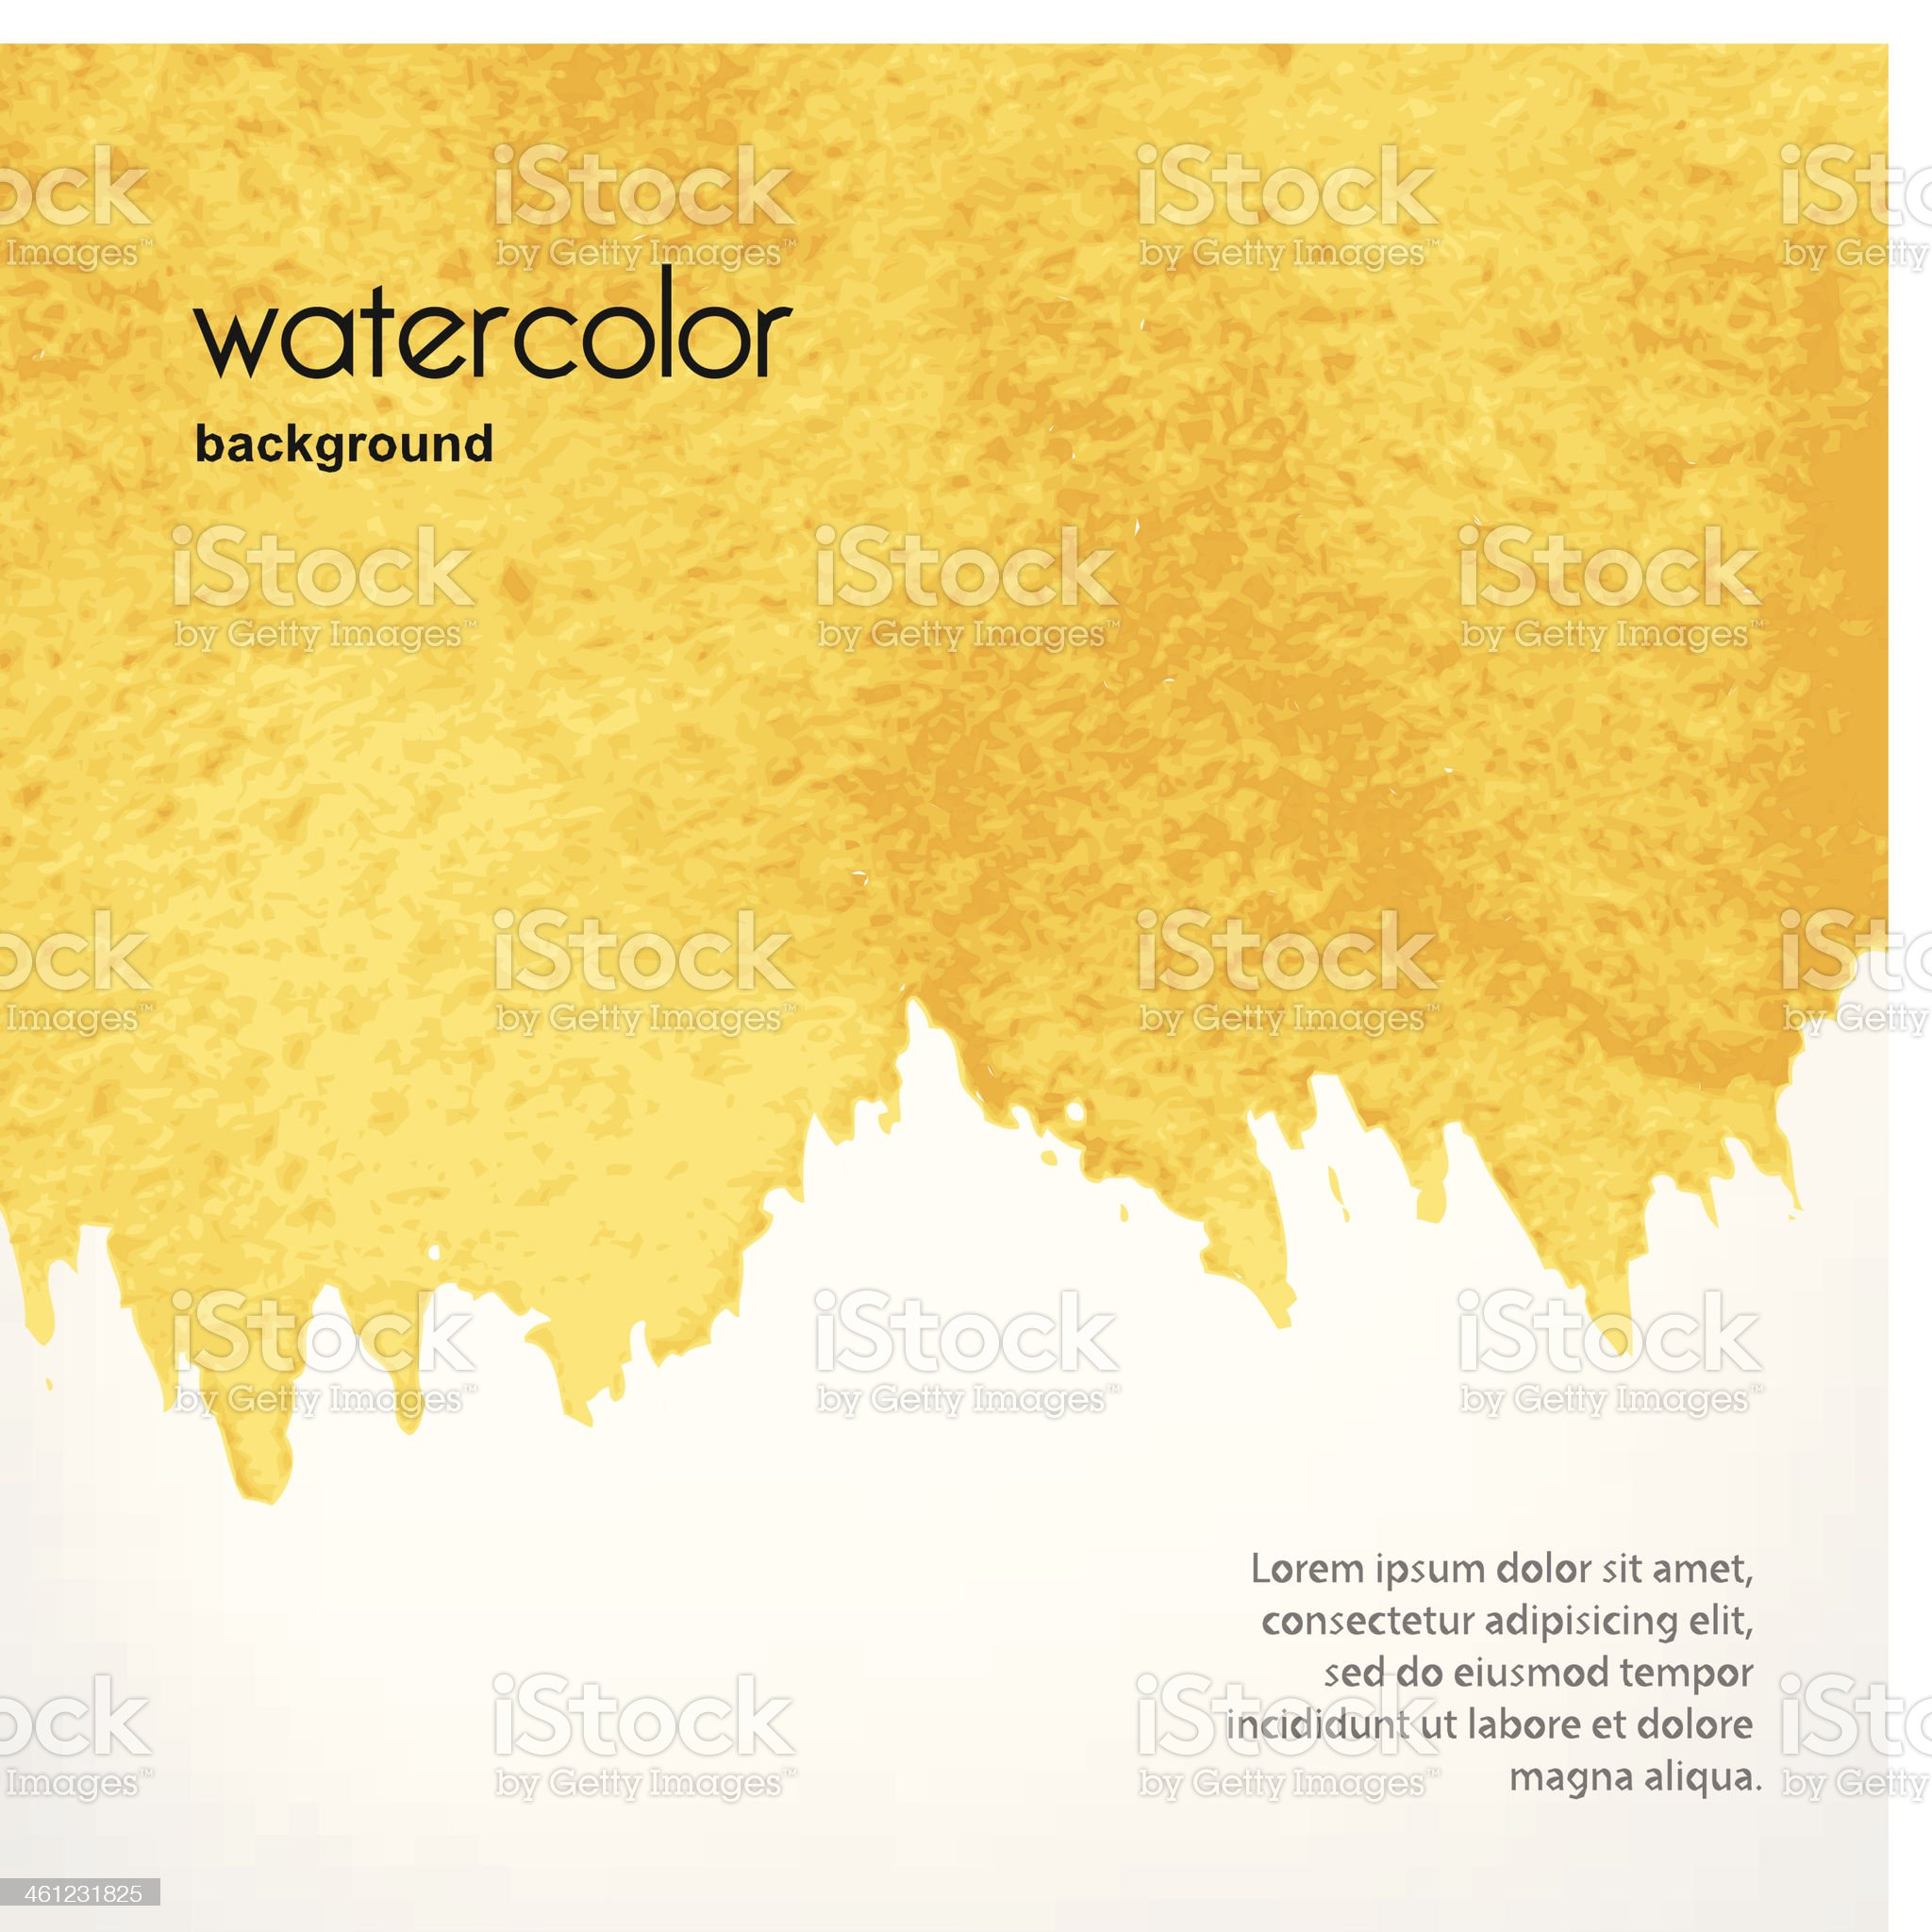 Watercolor stains in vector royalty-free stock vector art